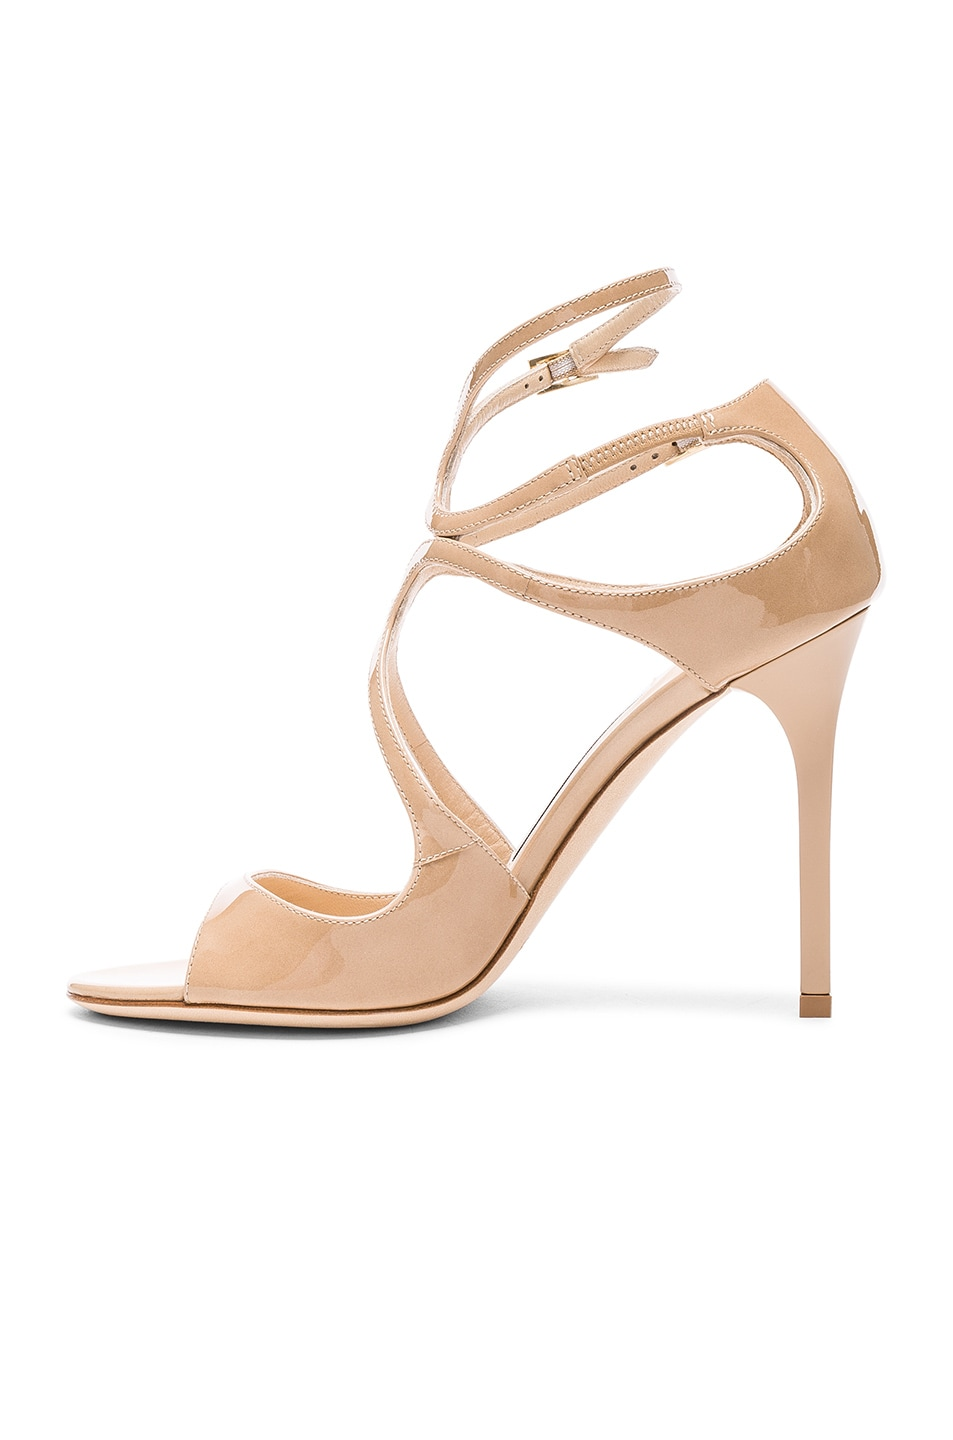 Image 5 of Jimmy Choo Patent Leather Lang Heels in Nude